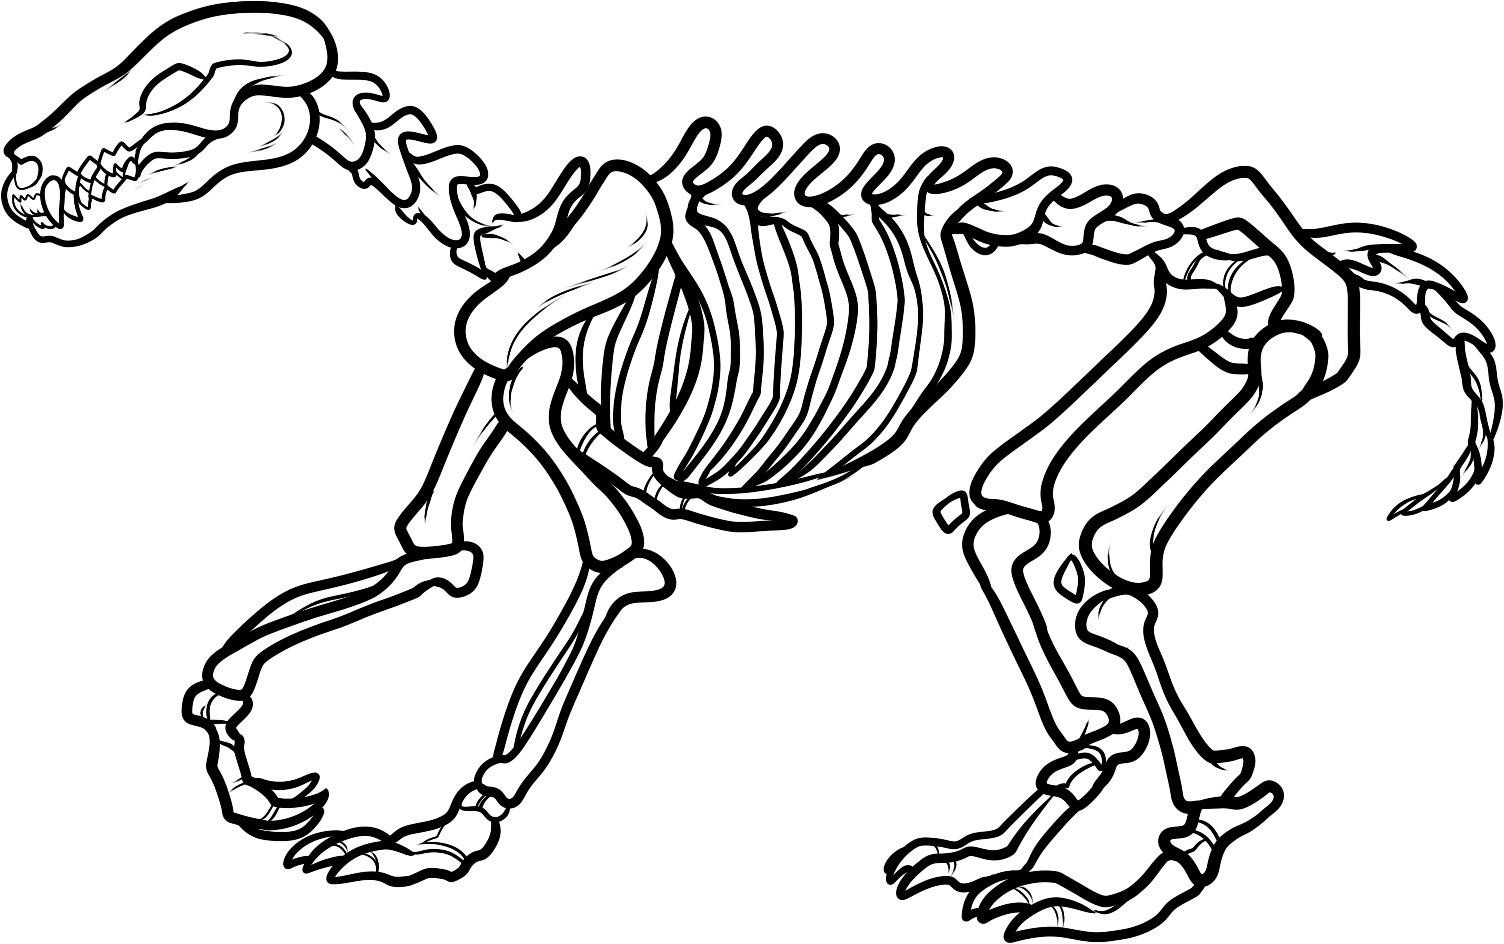 Fossil clipart #3, Download drawings